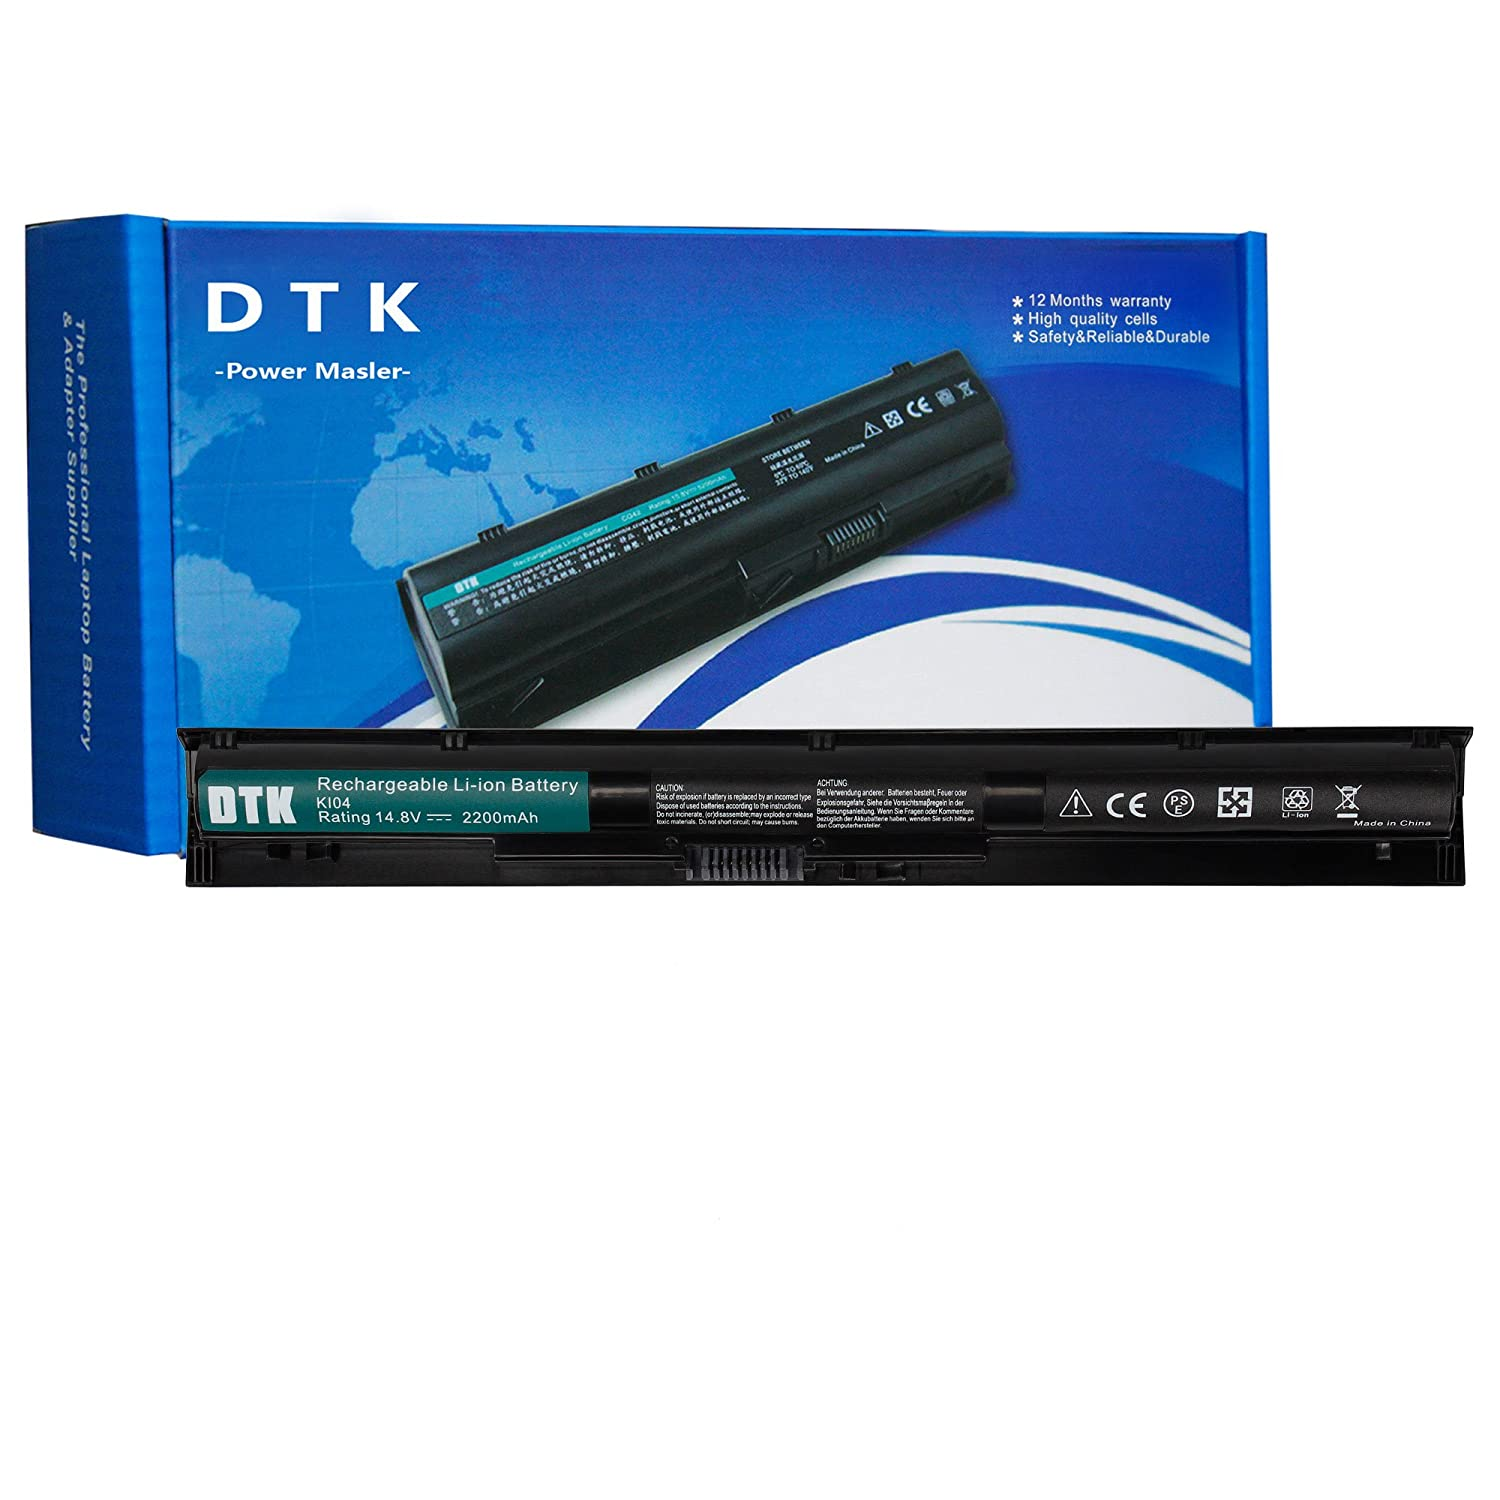 DTK New Laptop Battery Replacement for HP ProBook 440 G2 / 445 G2 / 450 G2 / 455 G2 / HP Envy 14 Series/Envy 15 Series/Envy 17 Series/HP Pavilion 15 17 Series P/N: VI04 [14.8V 2200MAH] DHVI04